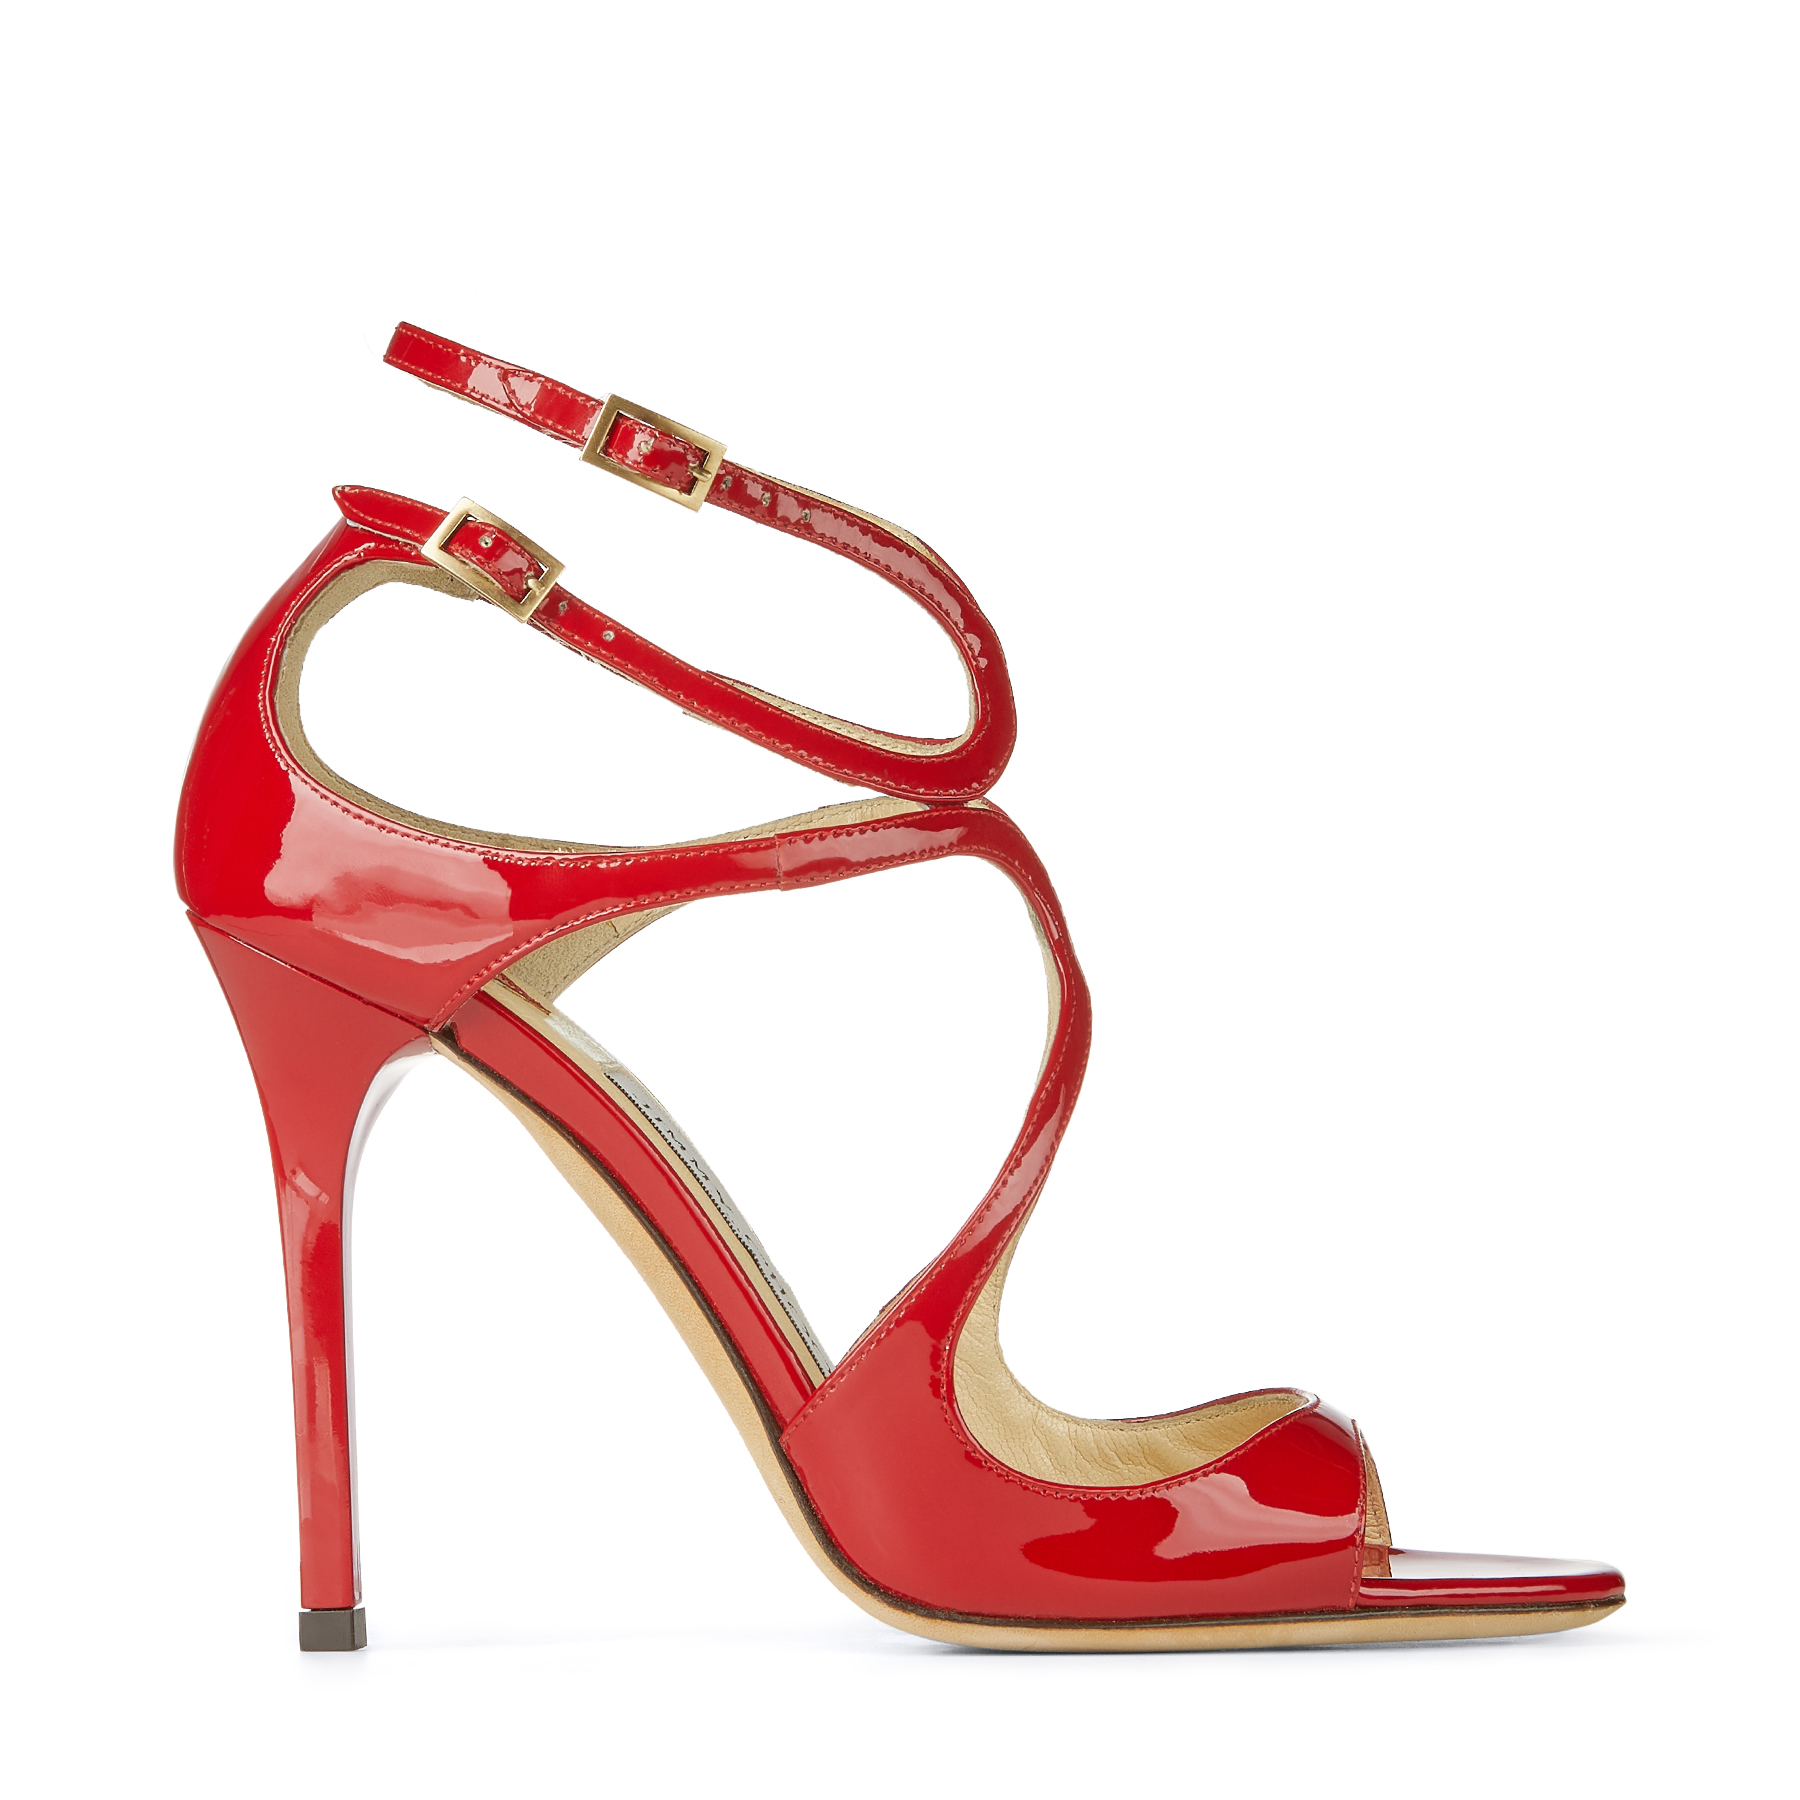 LANG Red Patent Leather Strappy Sandals